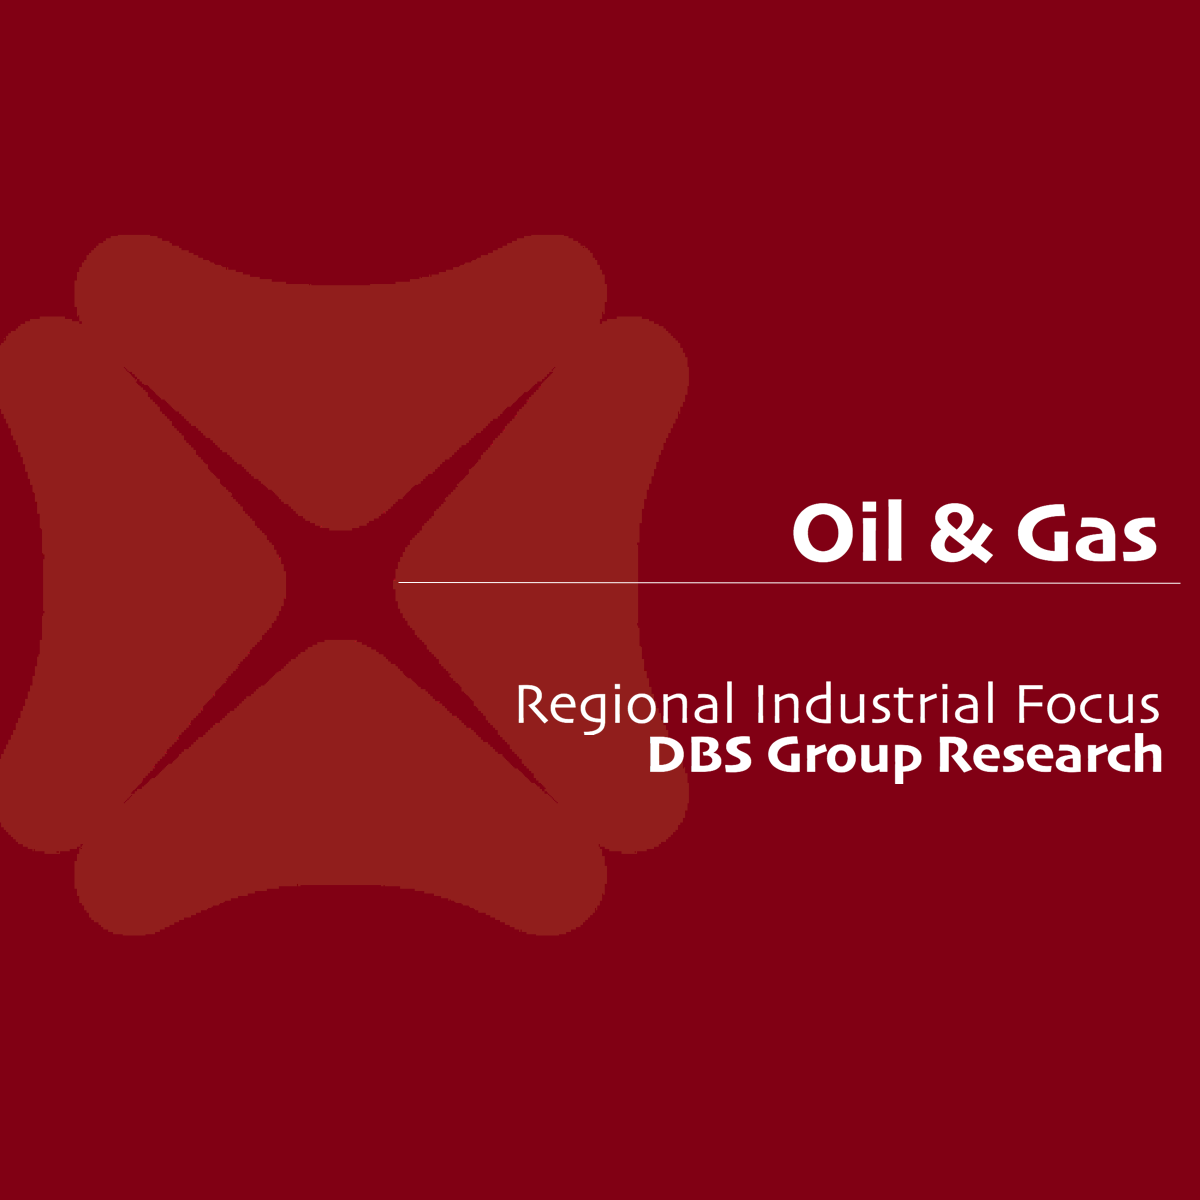 Regional Oil & Gas - DBS Vickers 2018-06-25: Opec's Moderate Output Boost Soothes Fears